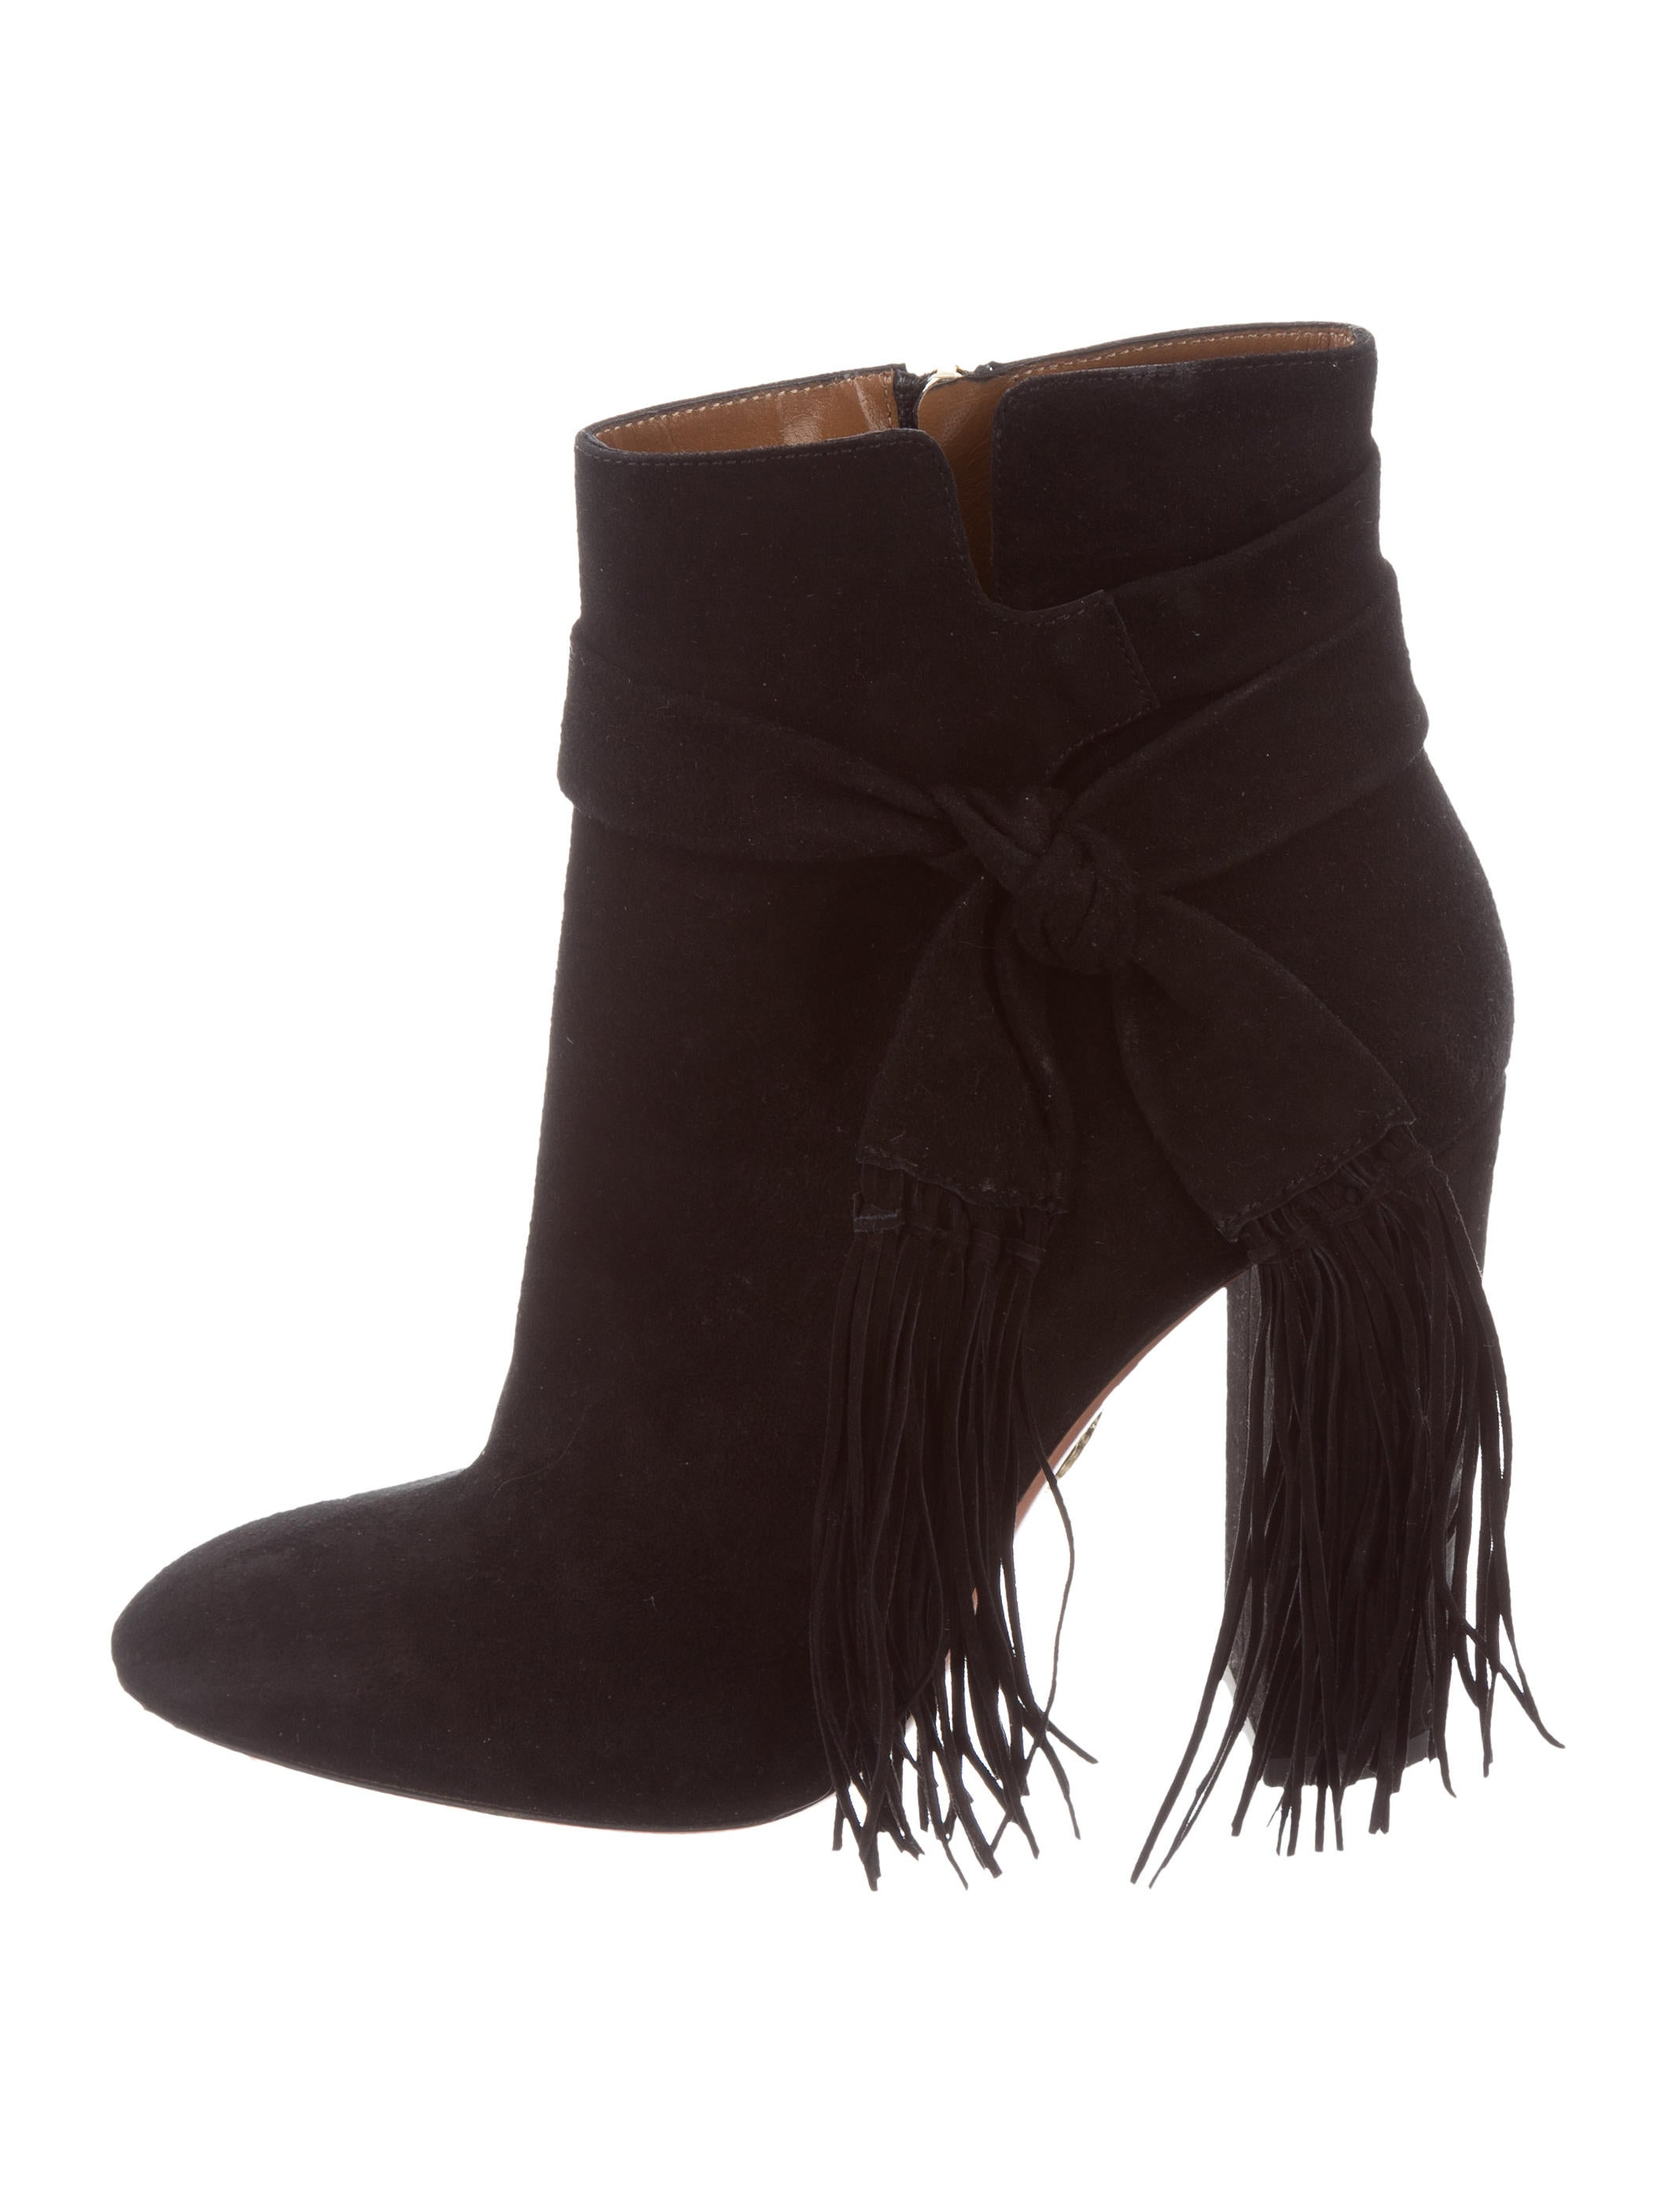 shopping online free shipping discount low price Aquazzura Fur & Fringe-Trimmed Booties 2zn3PShw